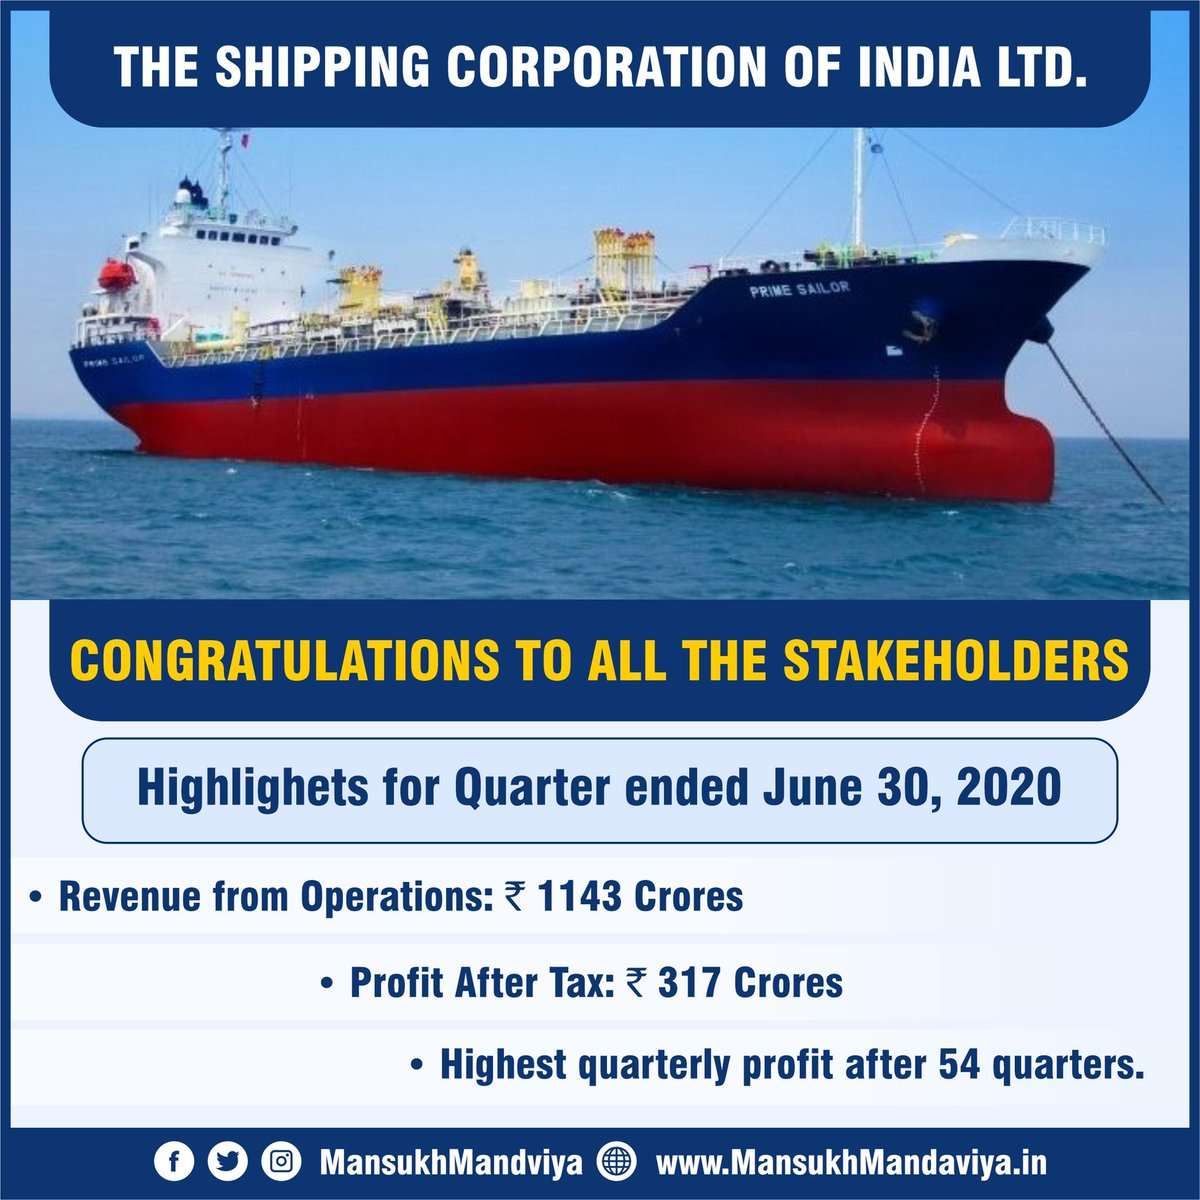 Leadership, vision and execution matters for a company to be successful !  The Shipping Corporation of India made the highest profits in the last 54 quarters amid this pandemic and is now thriving to cross the next milestone. @shippingcorp https://t.co/9WzxaUHL5T